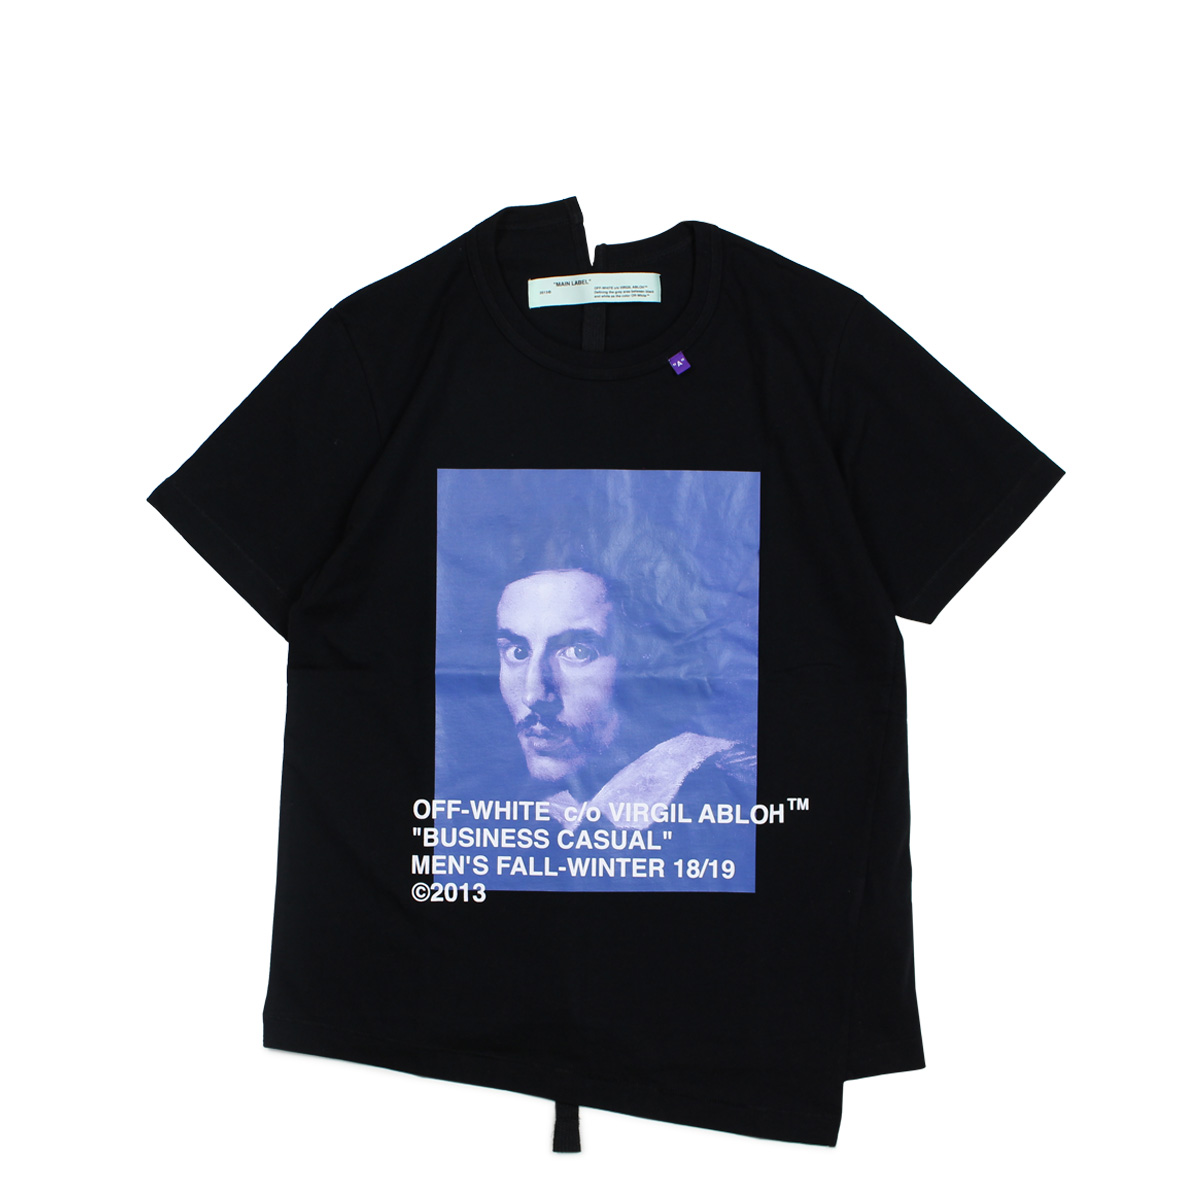 d2ae98bde60 Off-white BERNINI PRINT T-SHIRTS off-white T-shirt short sleeves men black  OMAA032 185011 [11/19 Shinnyu load] [1811]